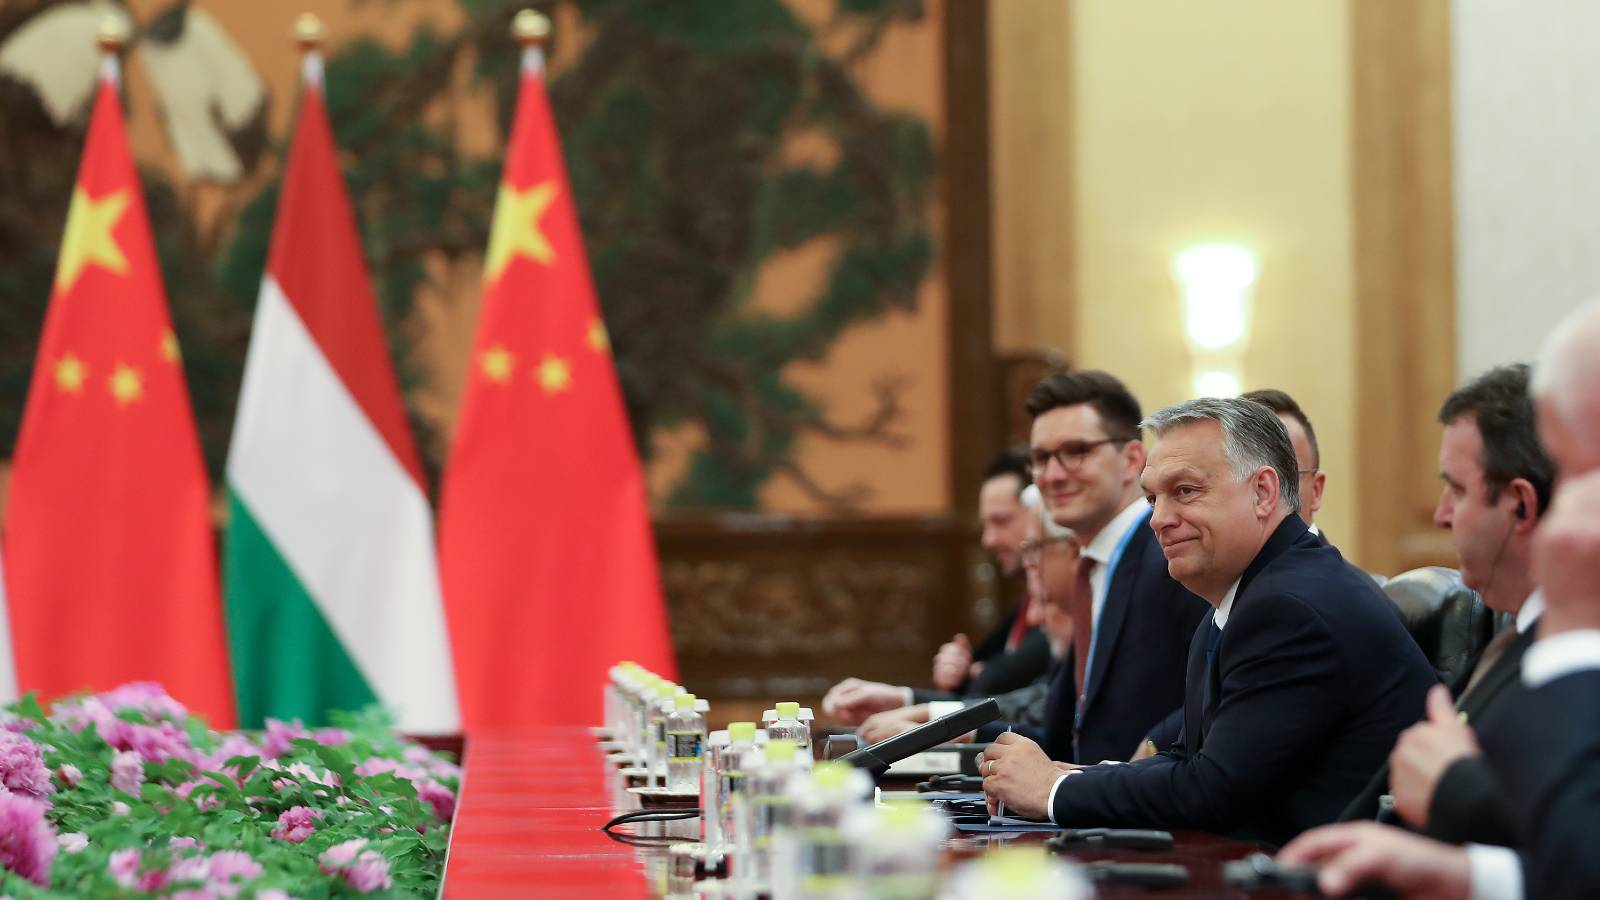 Photo: Hungarian Prime Minister Viktor Orban talks with Chinese President Xi Jinping (not pictured) during the bilateral meeting of the Second Belt and Road Forum at the Great Hall of the People, in Beijing, China April 25, 2019. Credit: Andrea Verdelli/Pool via REUTERS.